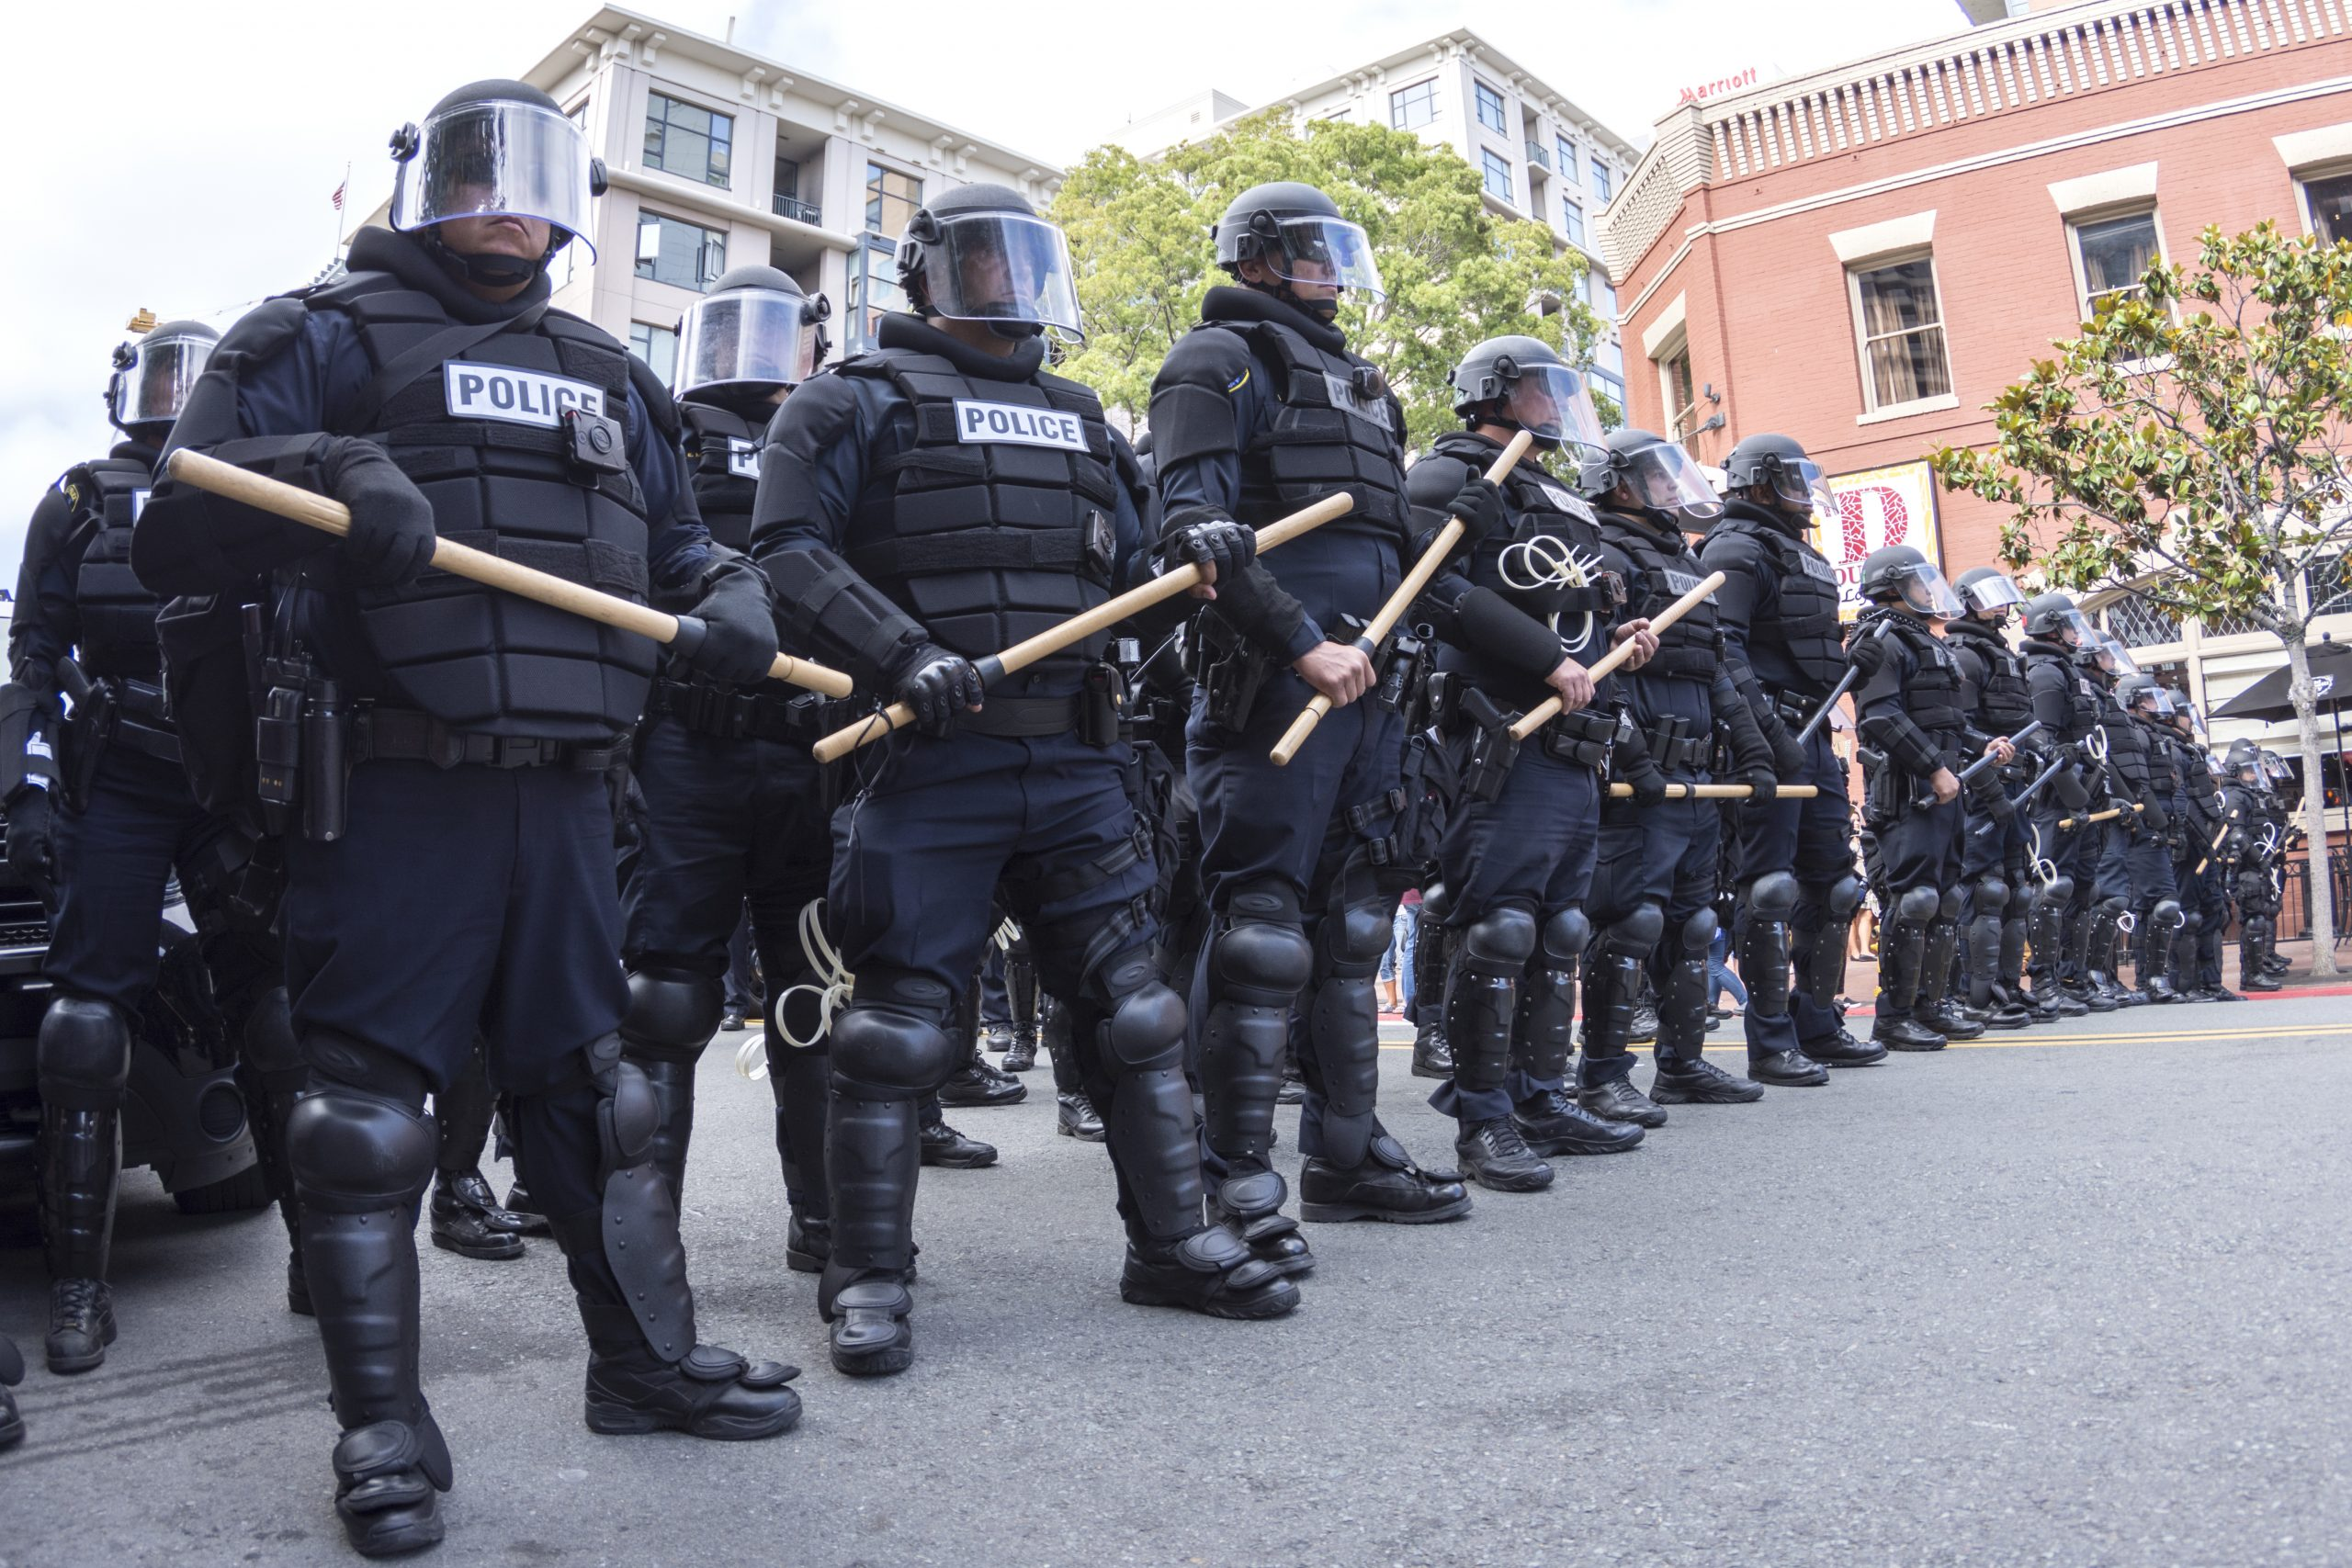 MAY 27, 2016: Riot police in full tactical gear stand ready to confront protesters at a Trump rally at the San Diego Convention Center